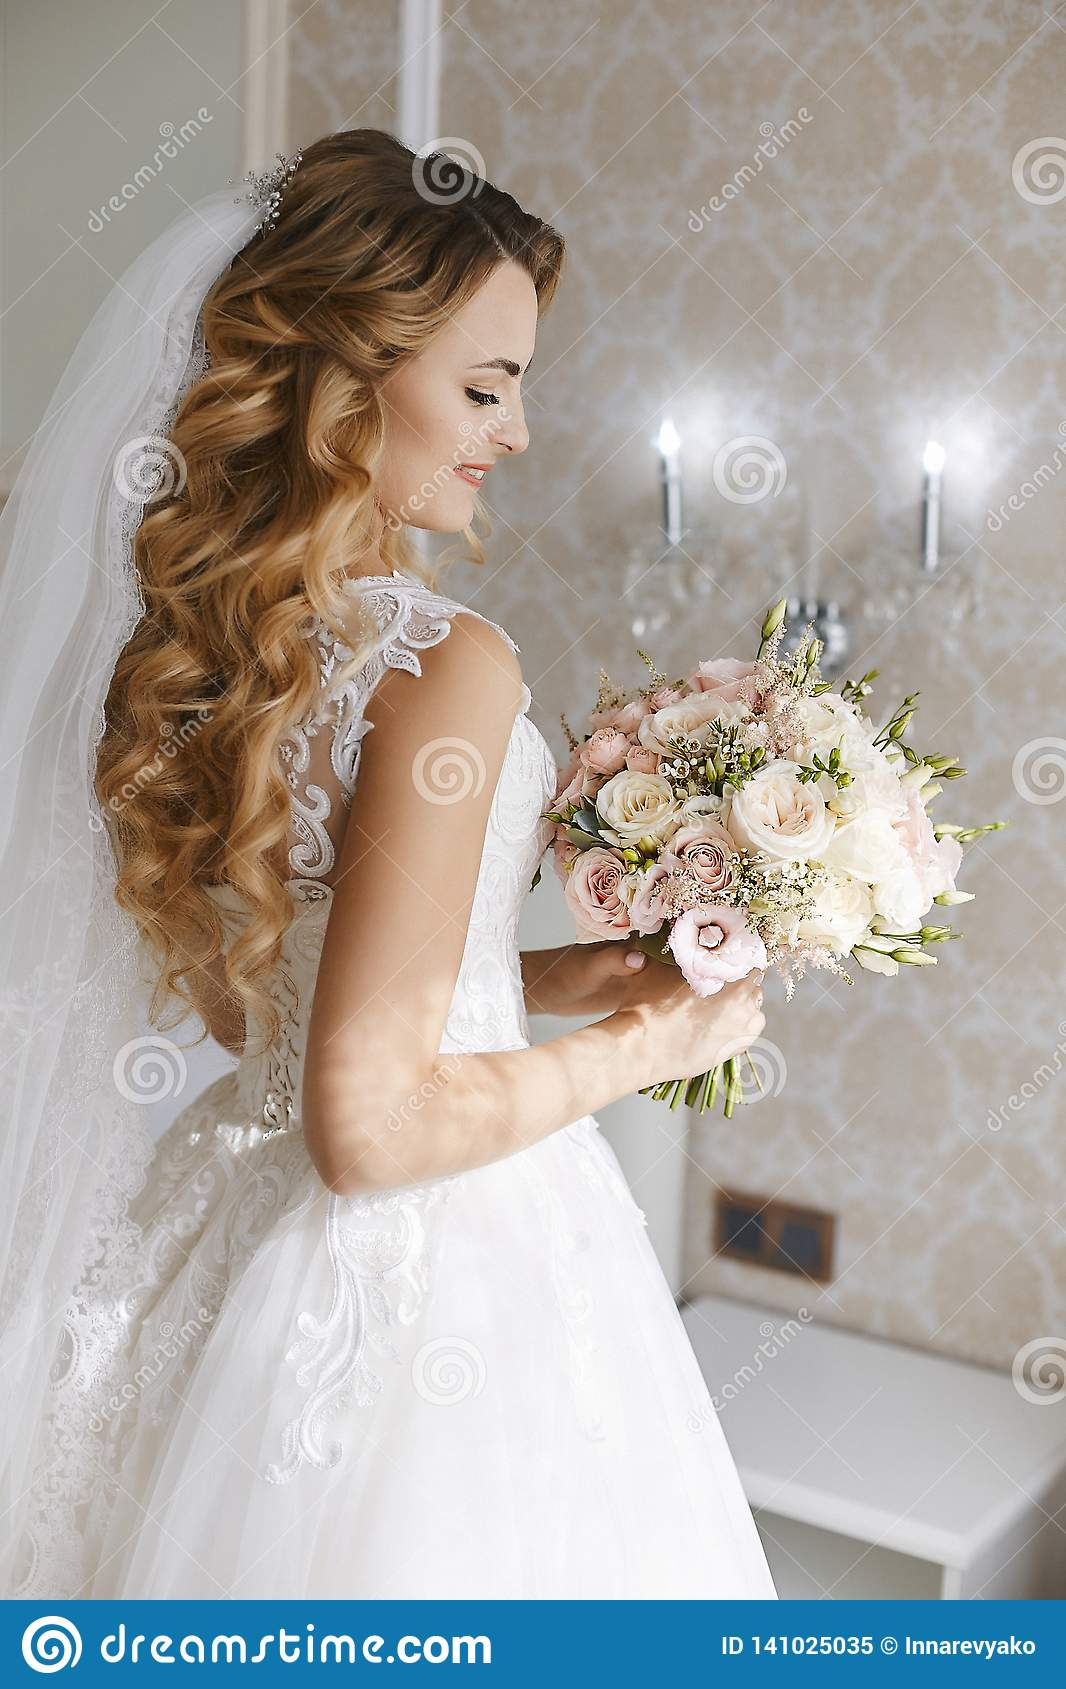 Beautiful young blonde bride with stylish wedding hairstyle in a white fashionable dress with a bouquet of flowers in